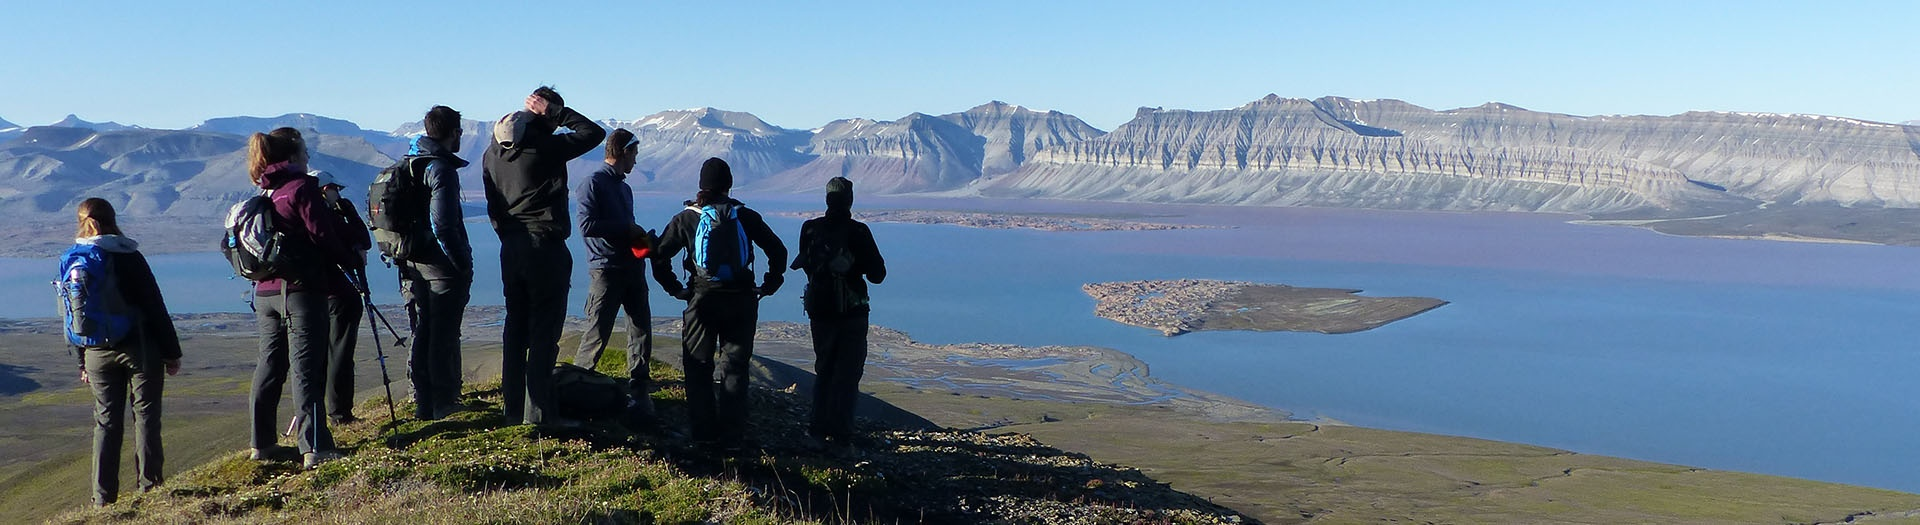 Group trips in Svalbard